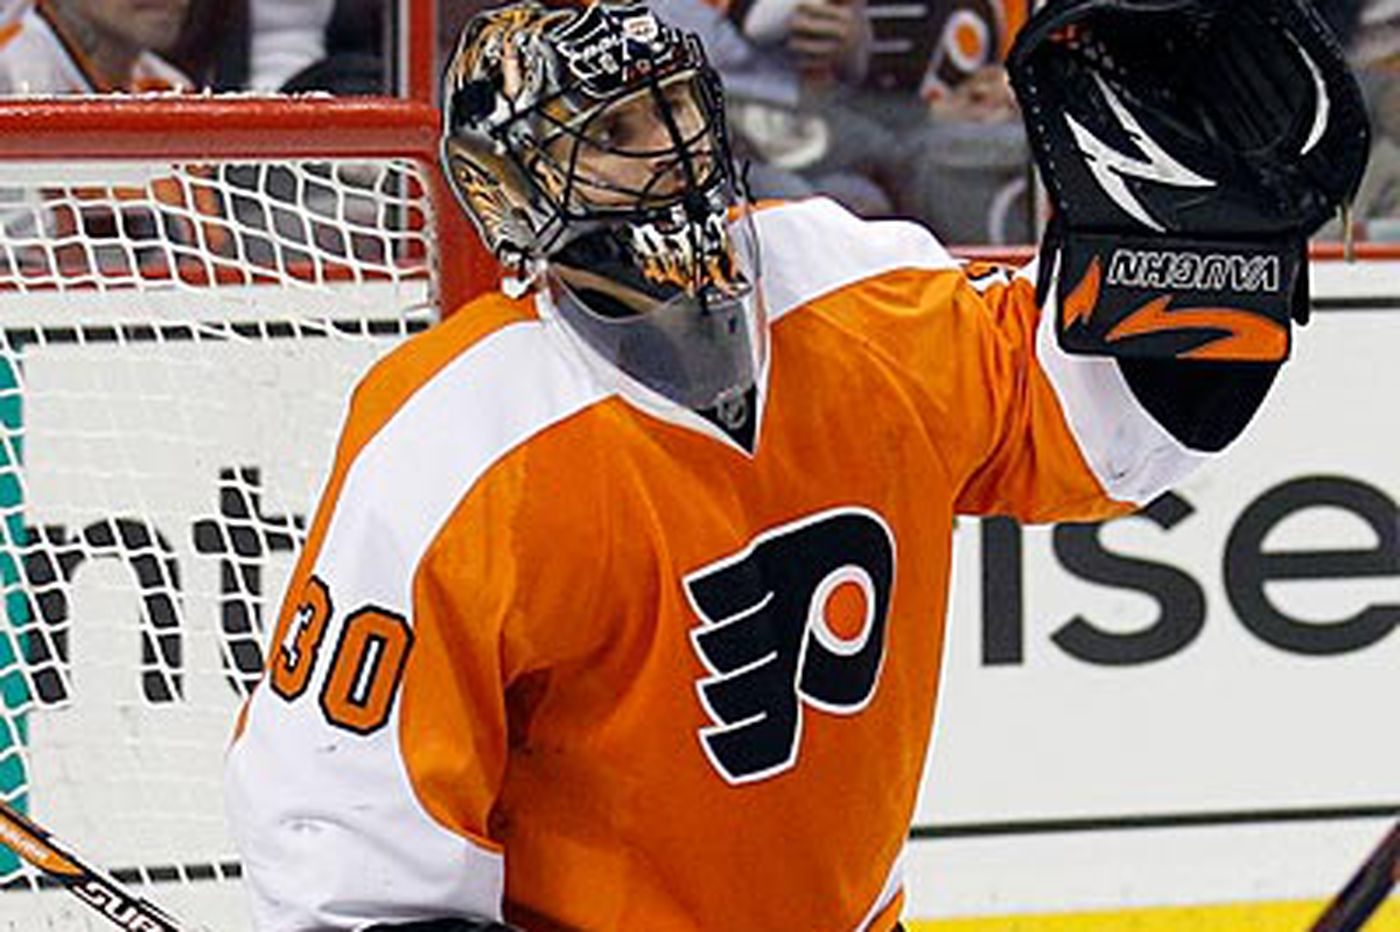 Bryzgalov's return encourages Flyers, despite loss